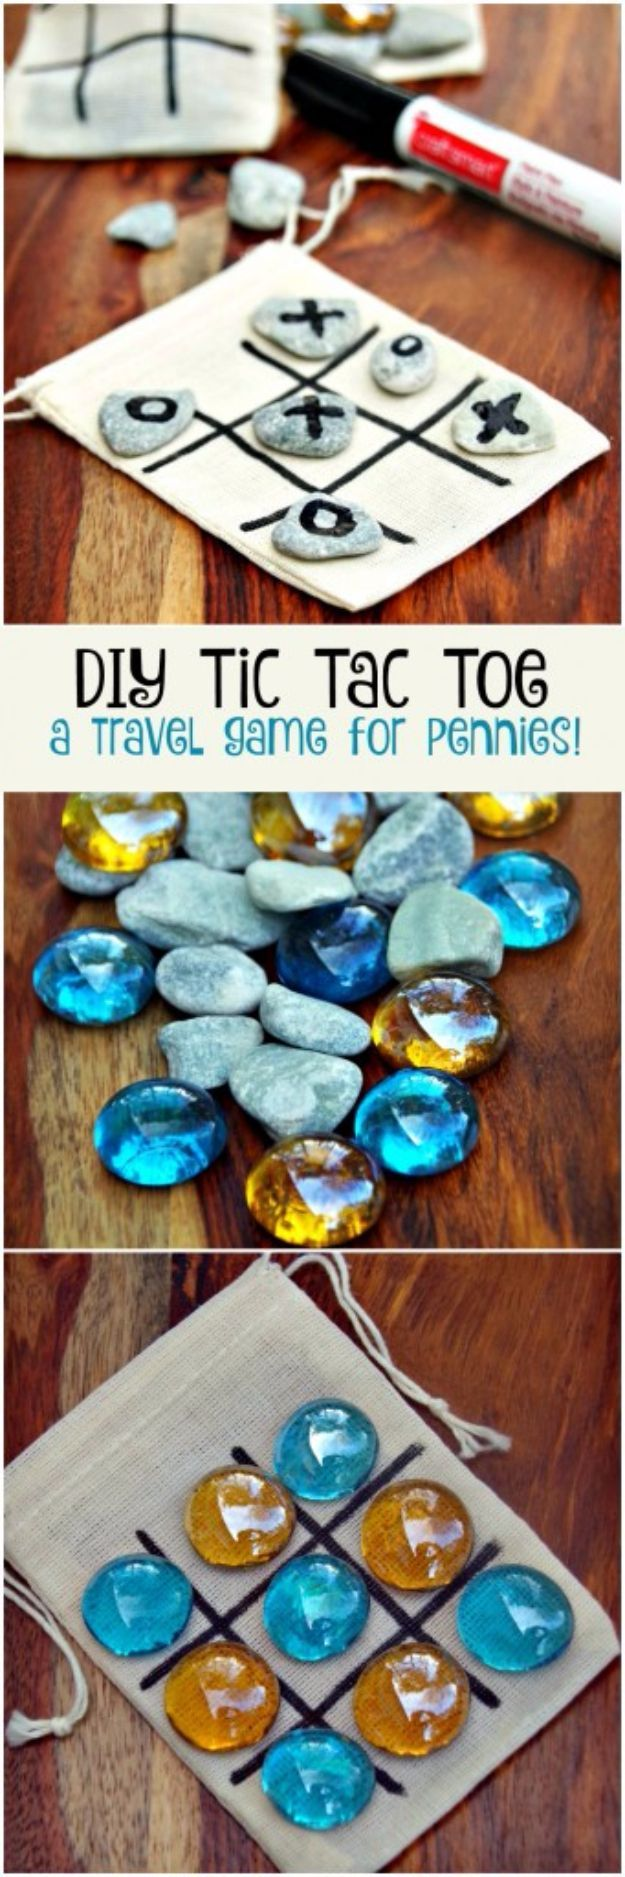 39 Easiest Dollar Store Crafts Ever - DIY Tic Tac Toe Game Board - Quick And Cheap Crafts To Make, Dollar Store Craft Ideas To Make And Sell, Cute Dollar Store Do It Yourself Projects, Cheap Craft Ideas, Dollar Sore Decor, Creative Dollar Store Crafts http://diyjoy.com/easy-dollar-store-crafts